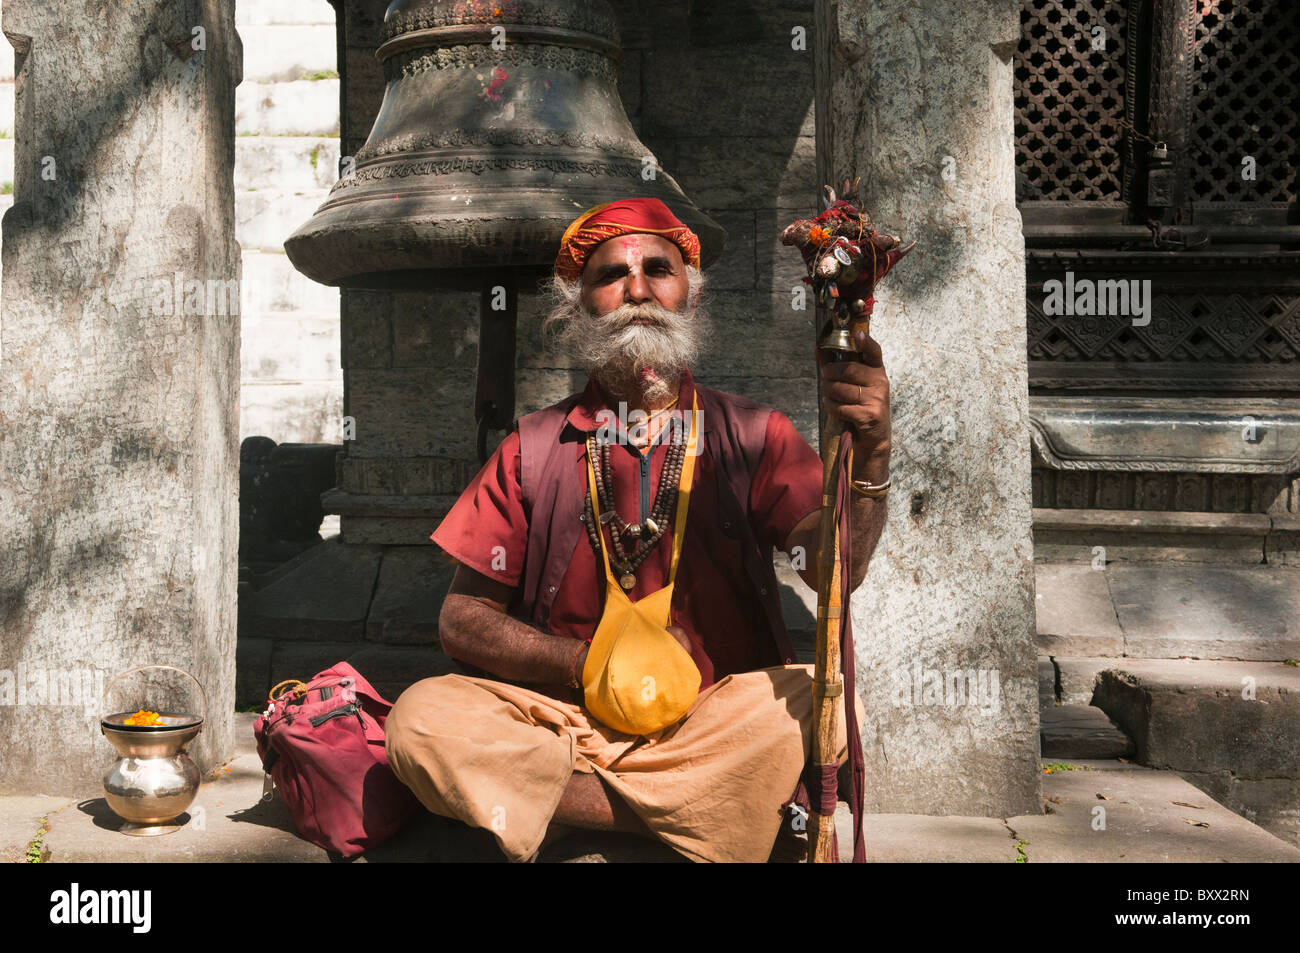 portrait of a sadhu at the Pashupatinath Temple in Kathmandu, Nepal - Stock Image